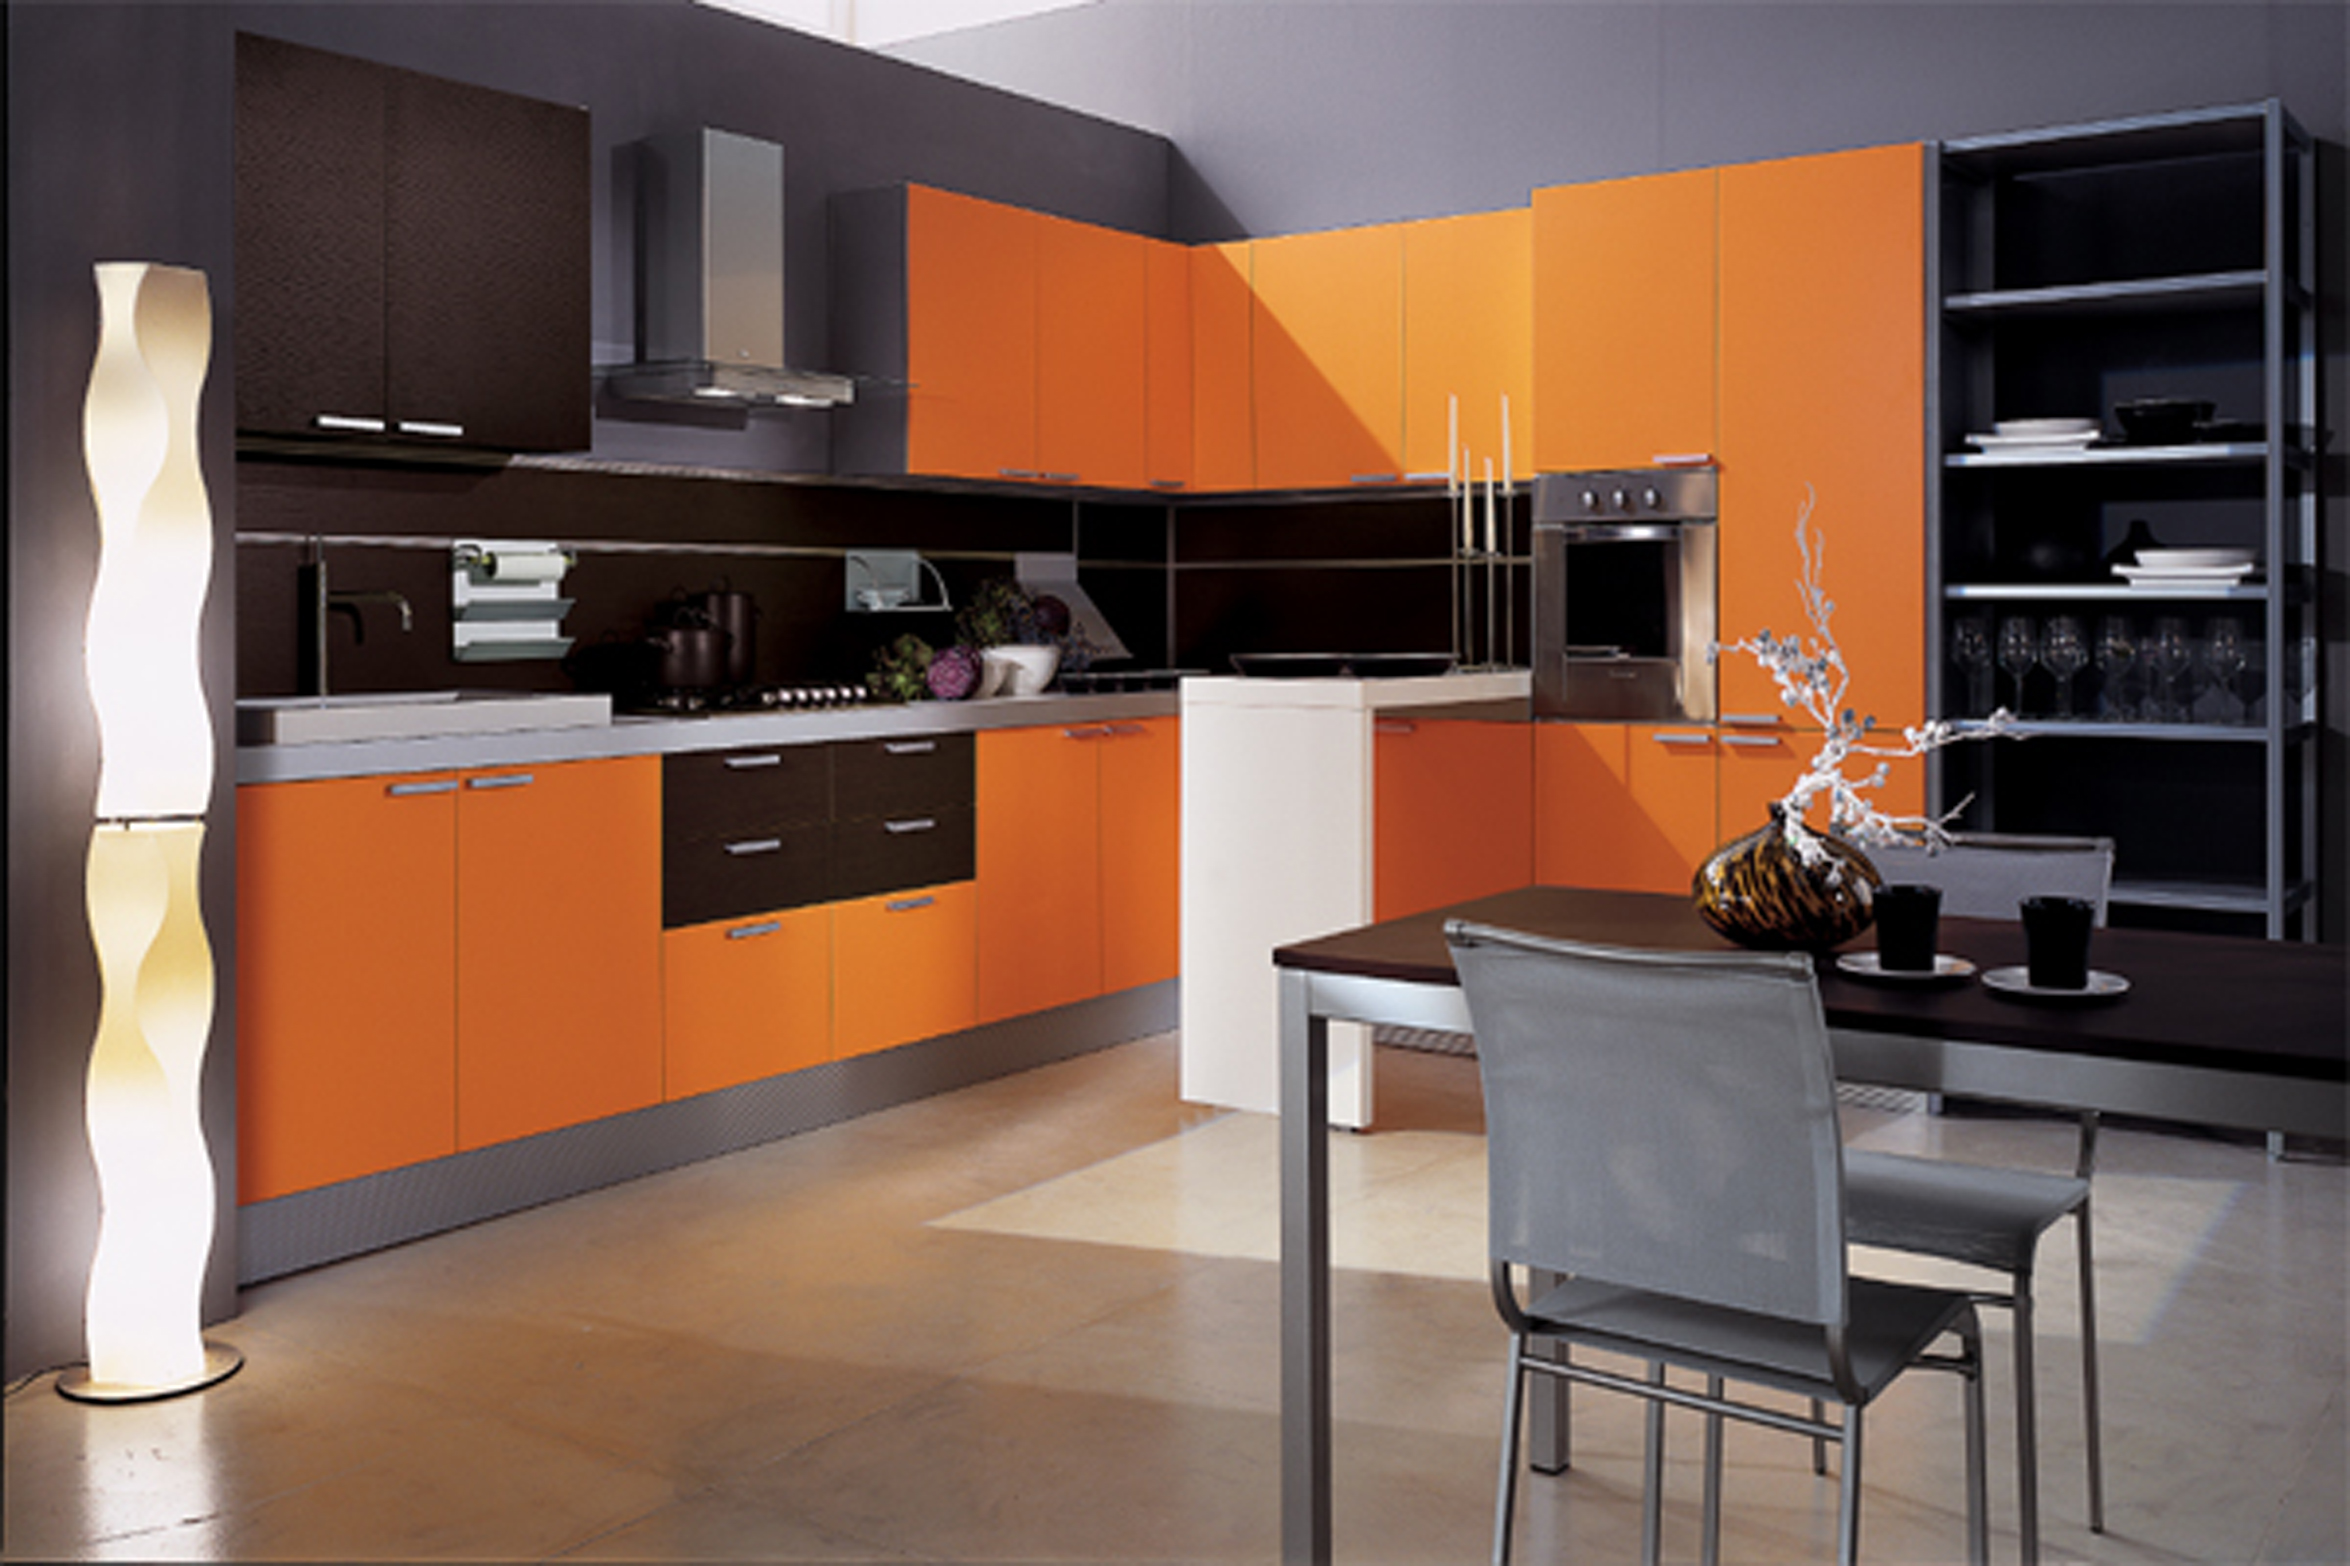 awesome kitchen american woodmark cabinets in orange with single oven and stove plus dining table for kitchen decor ideas